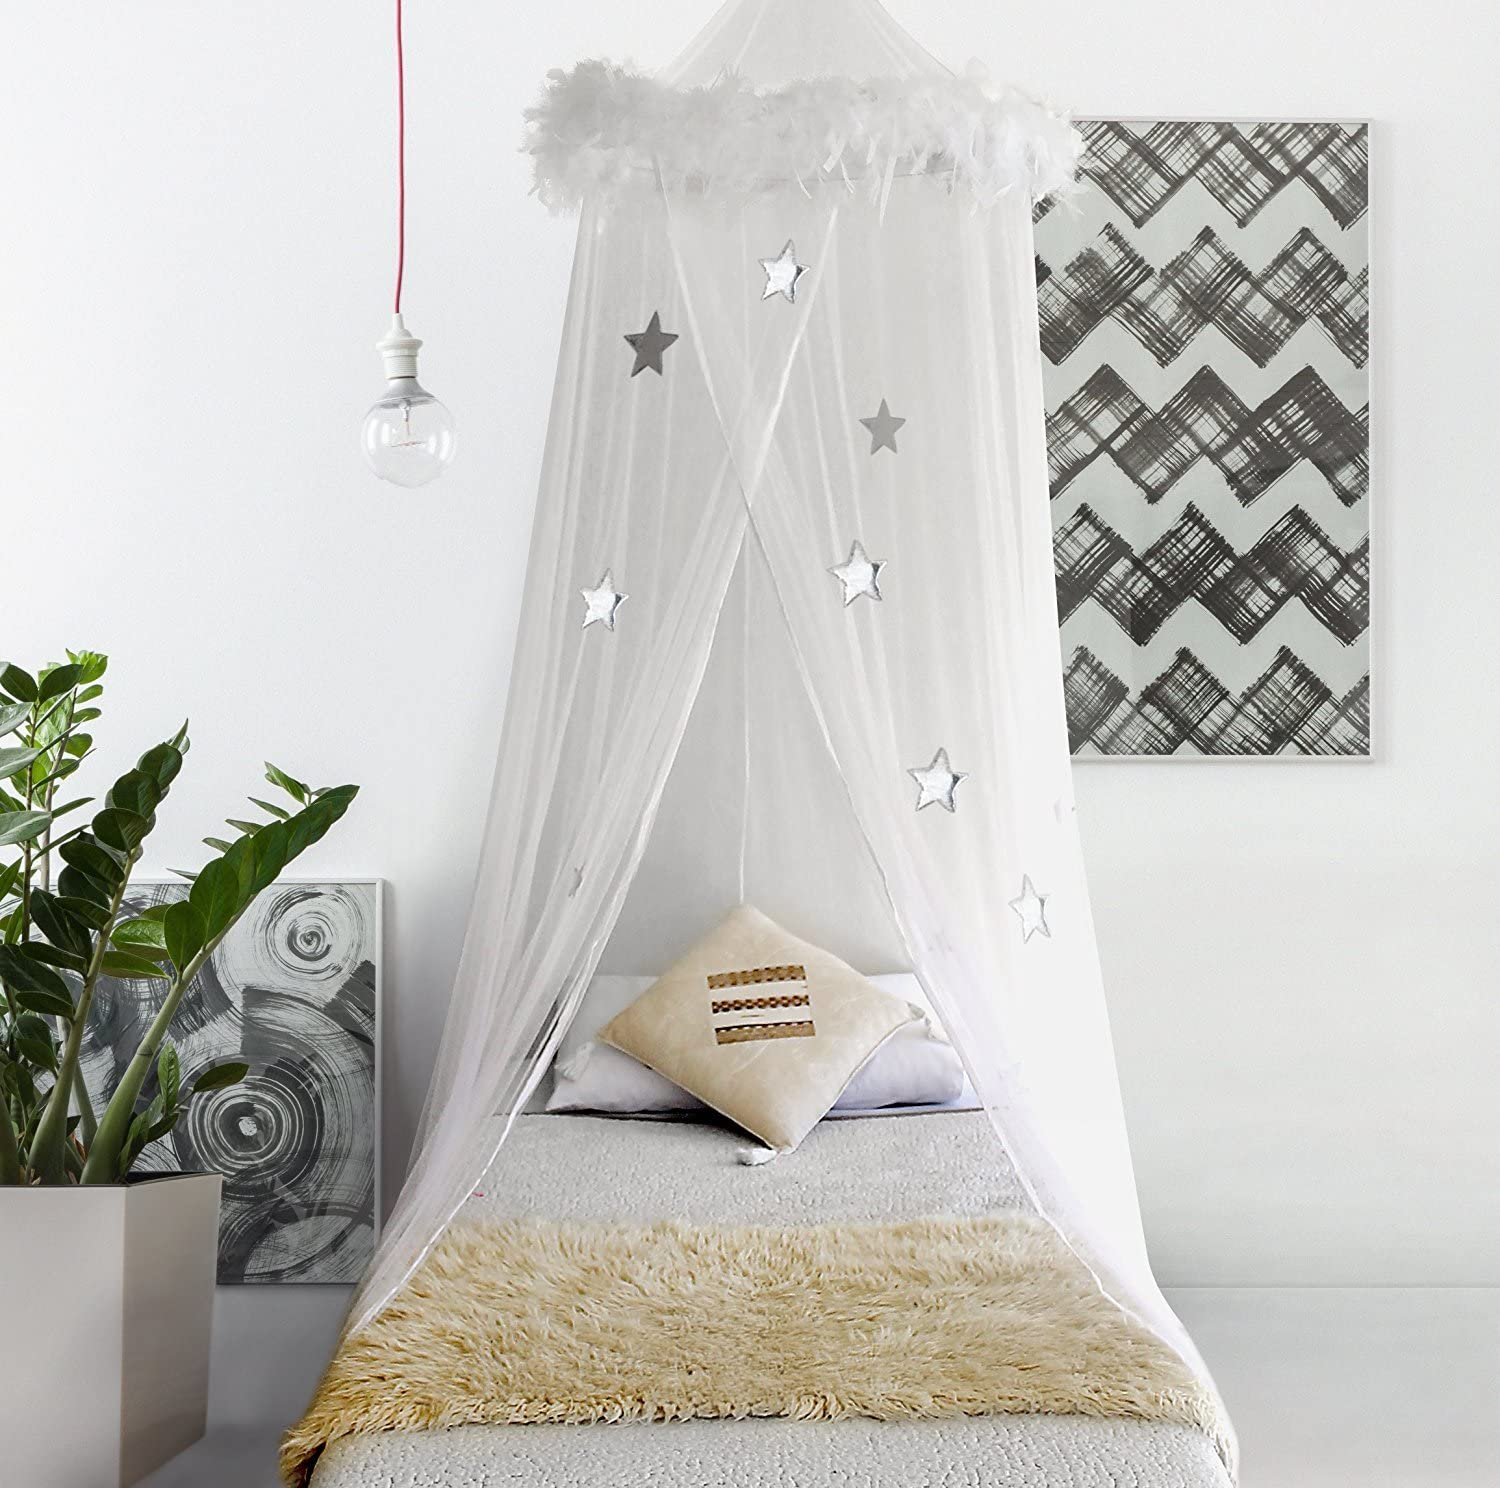 Bobo & Bee - Luxury Princess Bed Canopy Mosquito Net for Girls